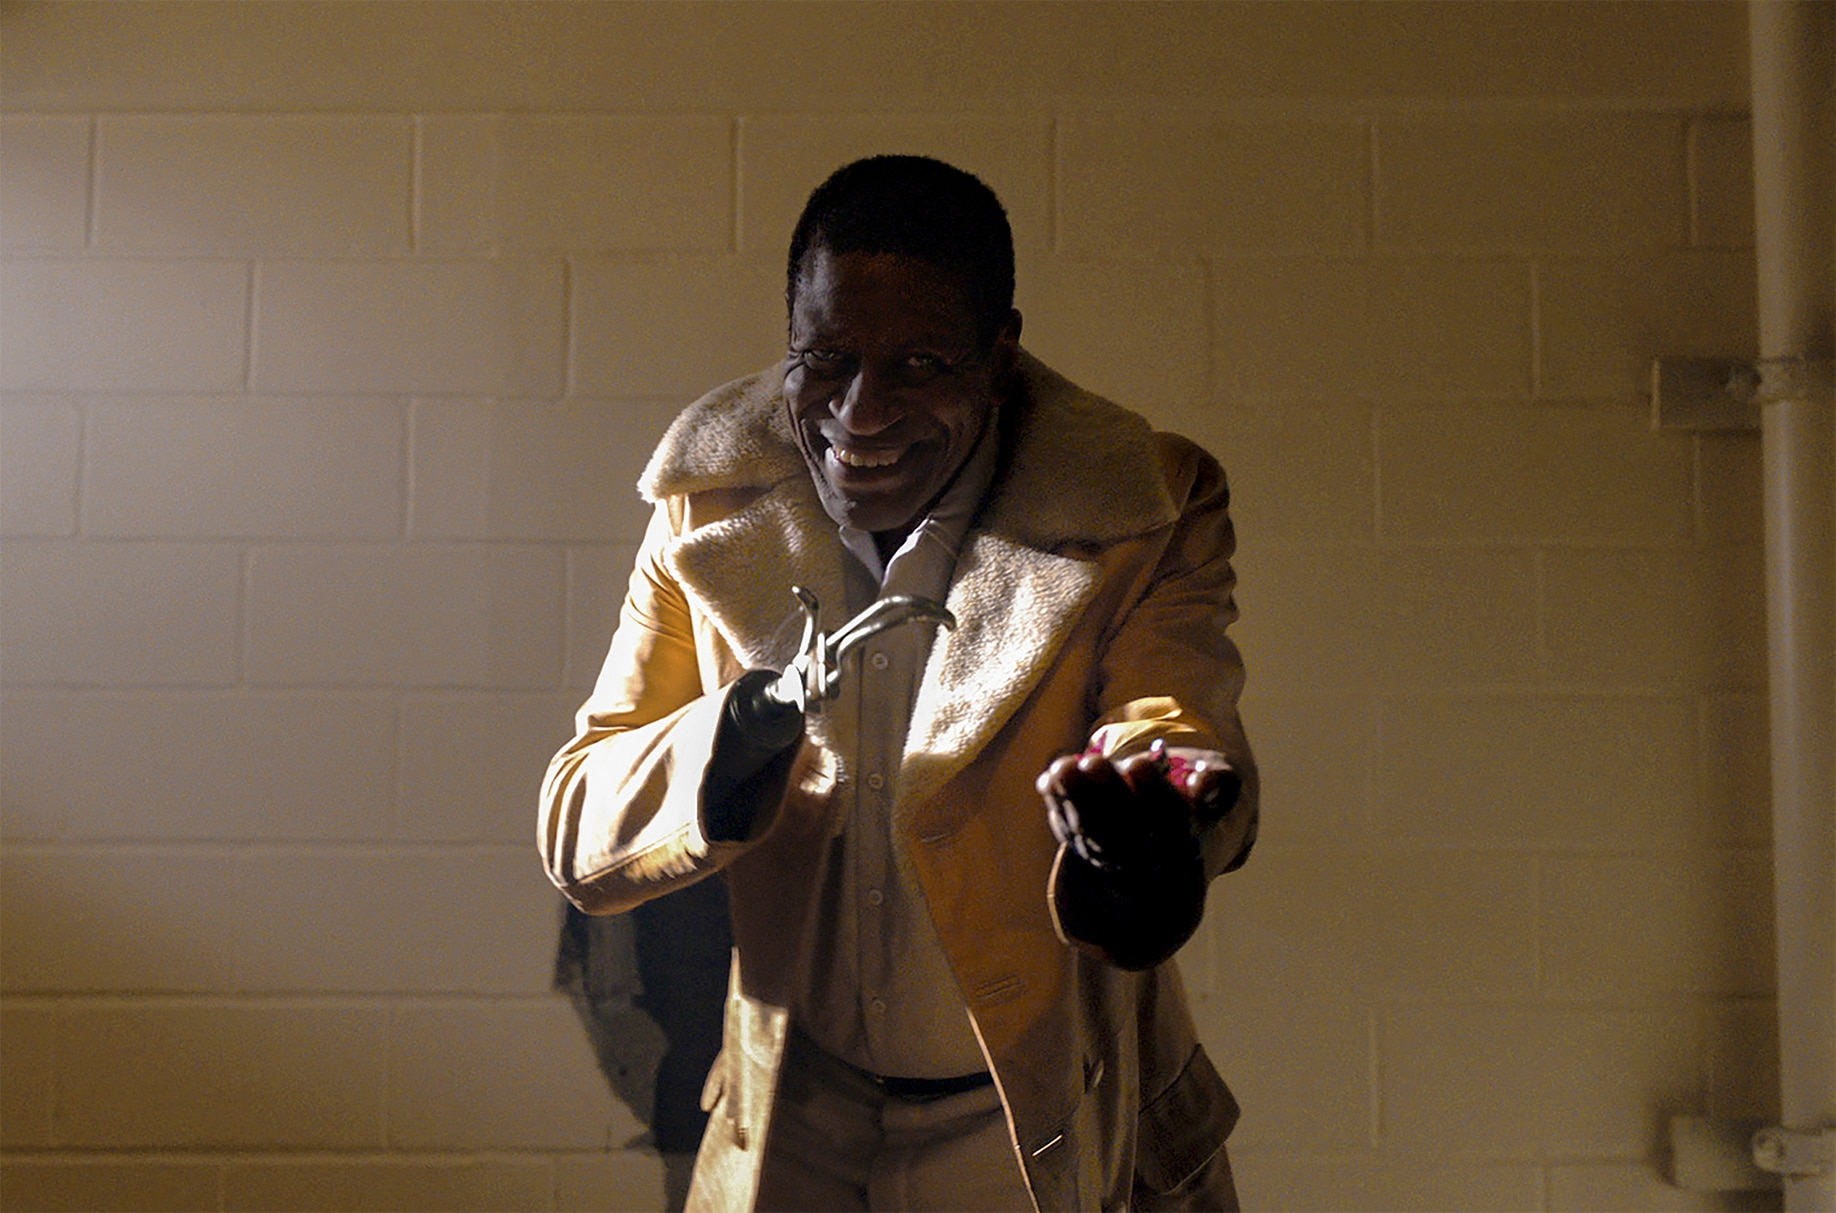 Candyman Is About Art About Trauma Nia DaCosta, Black trauma and suffering often receives exploitation in movies